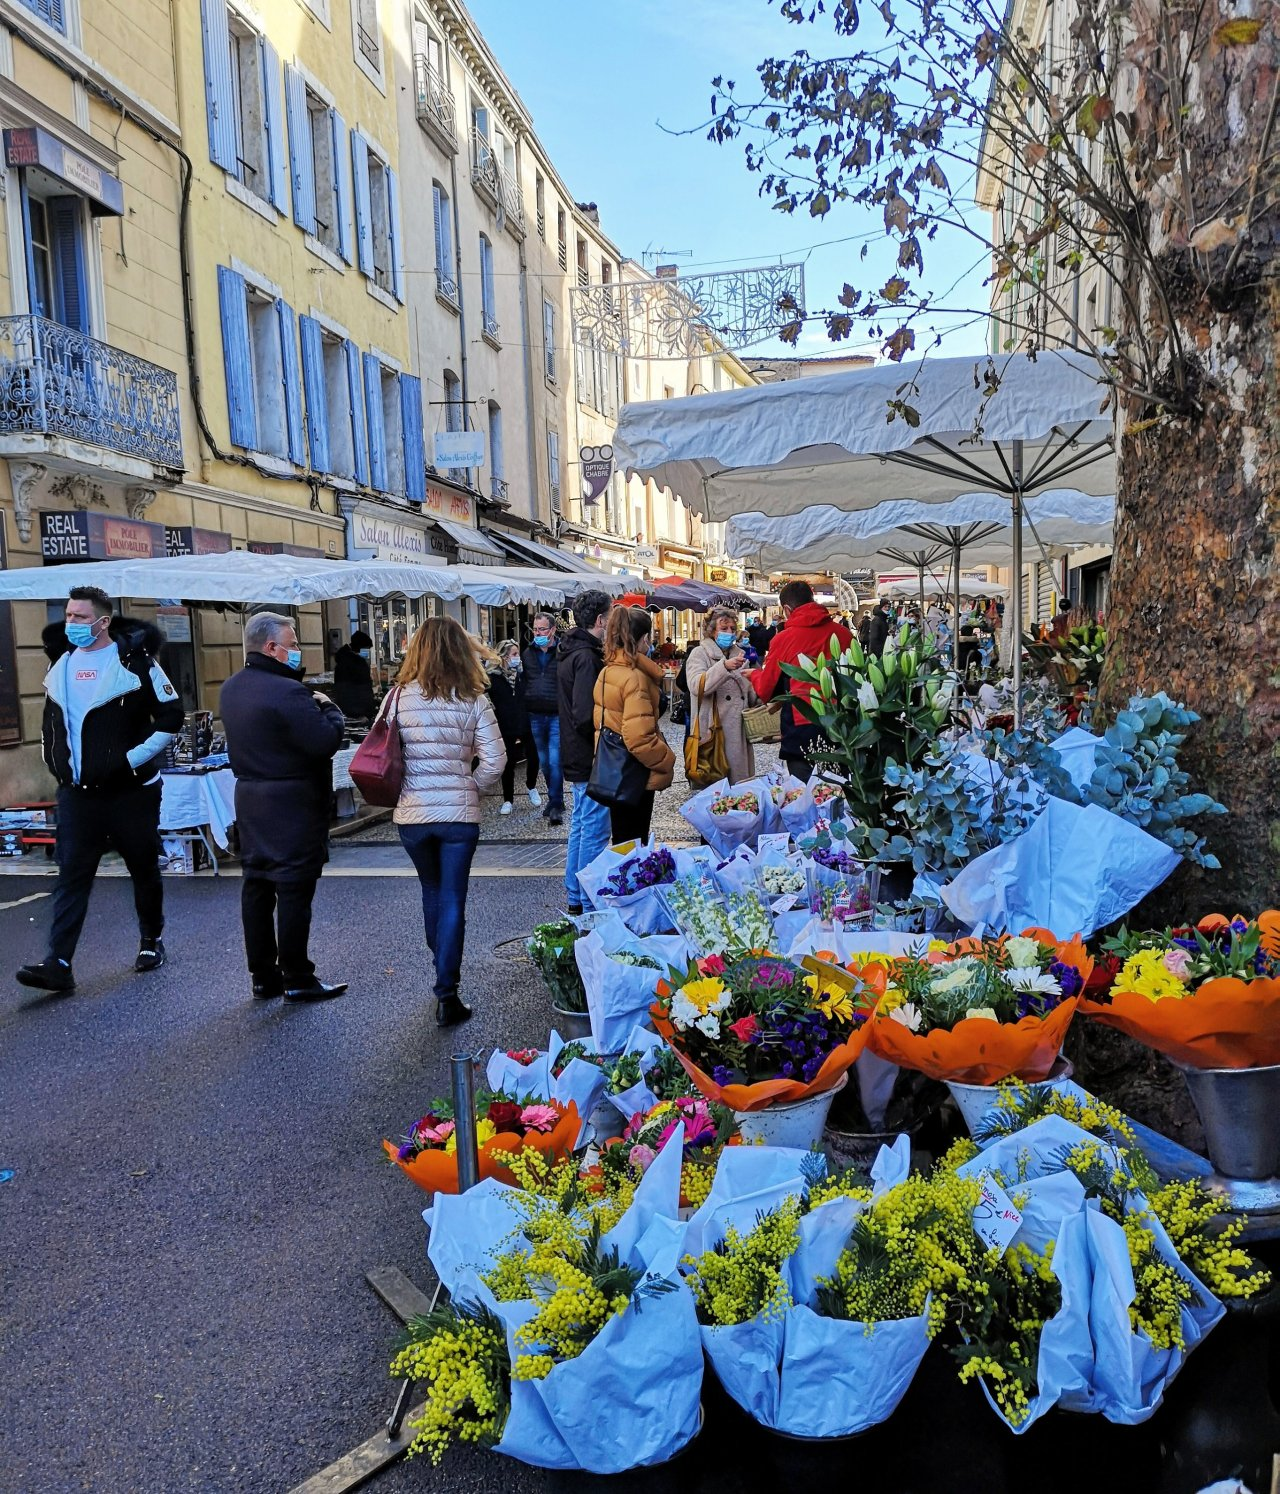 Back to Provence for Christmas